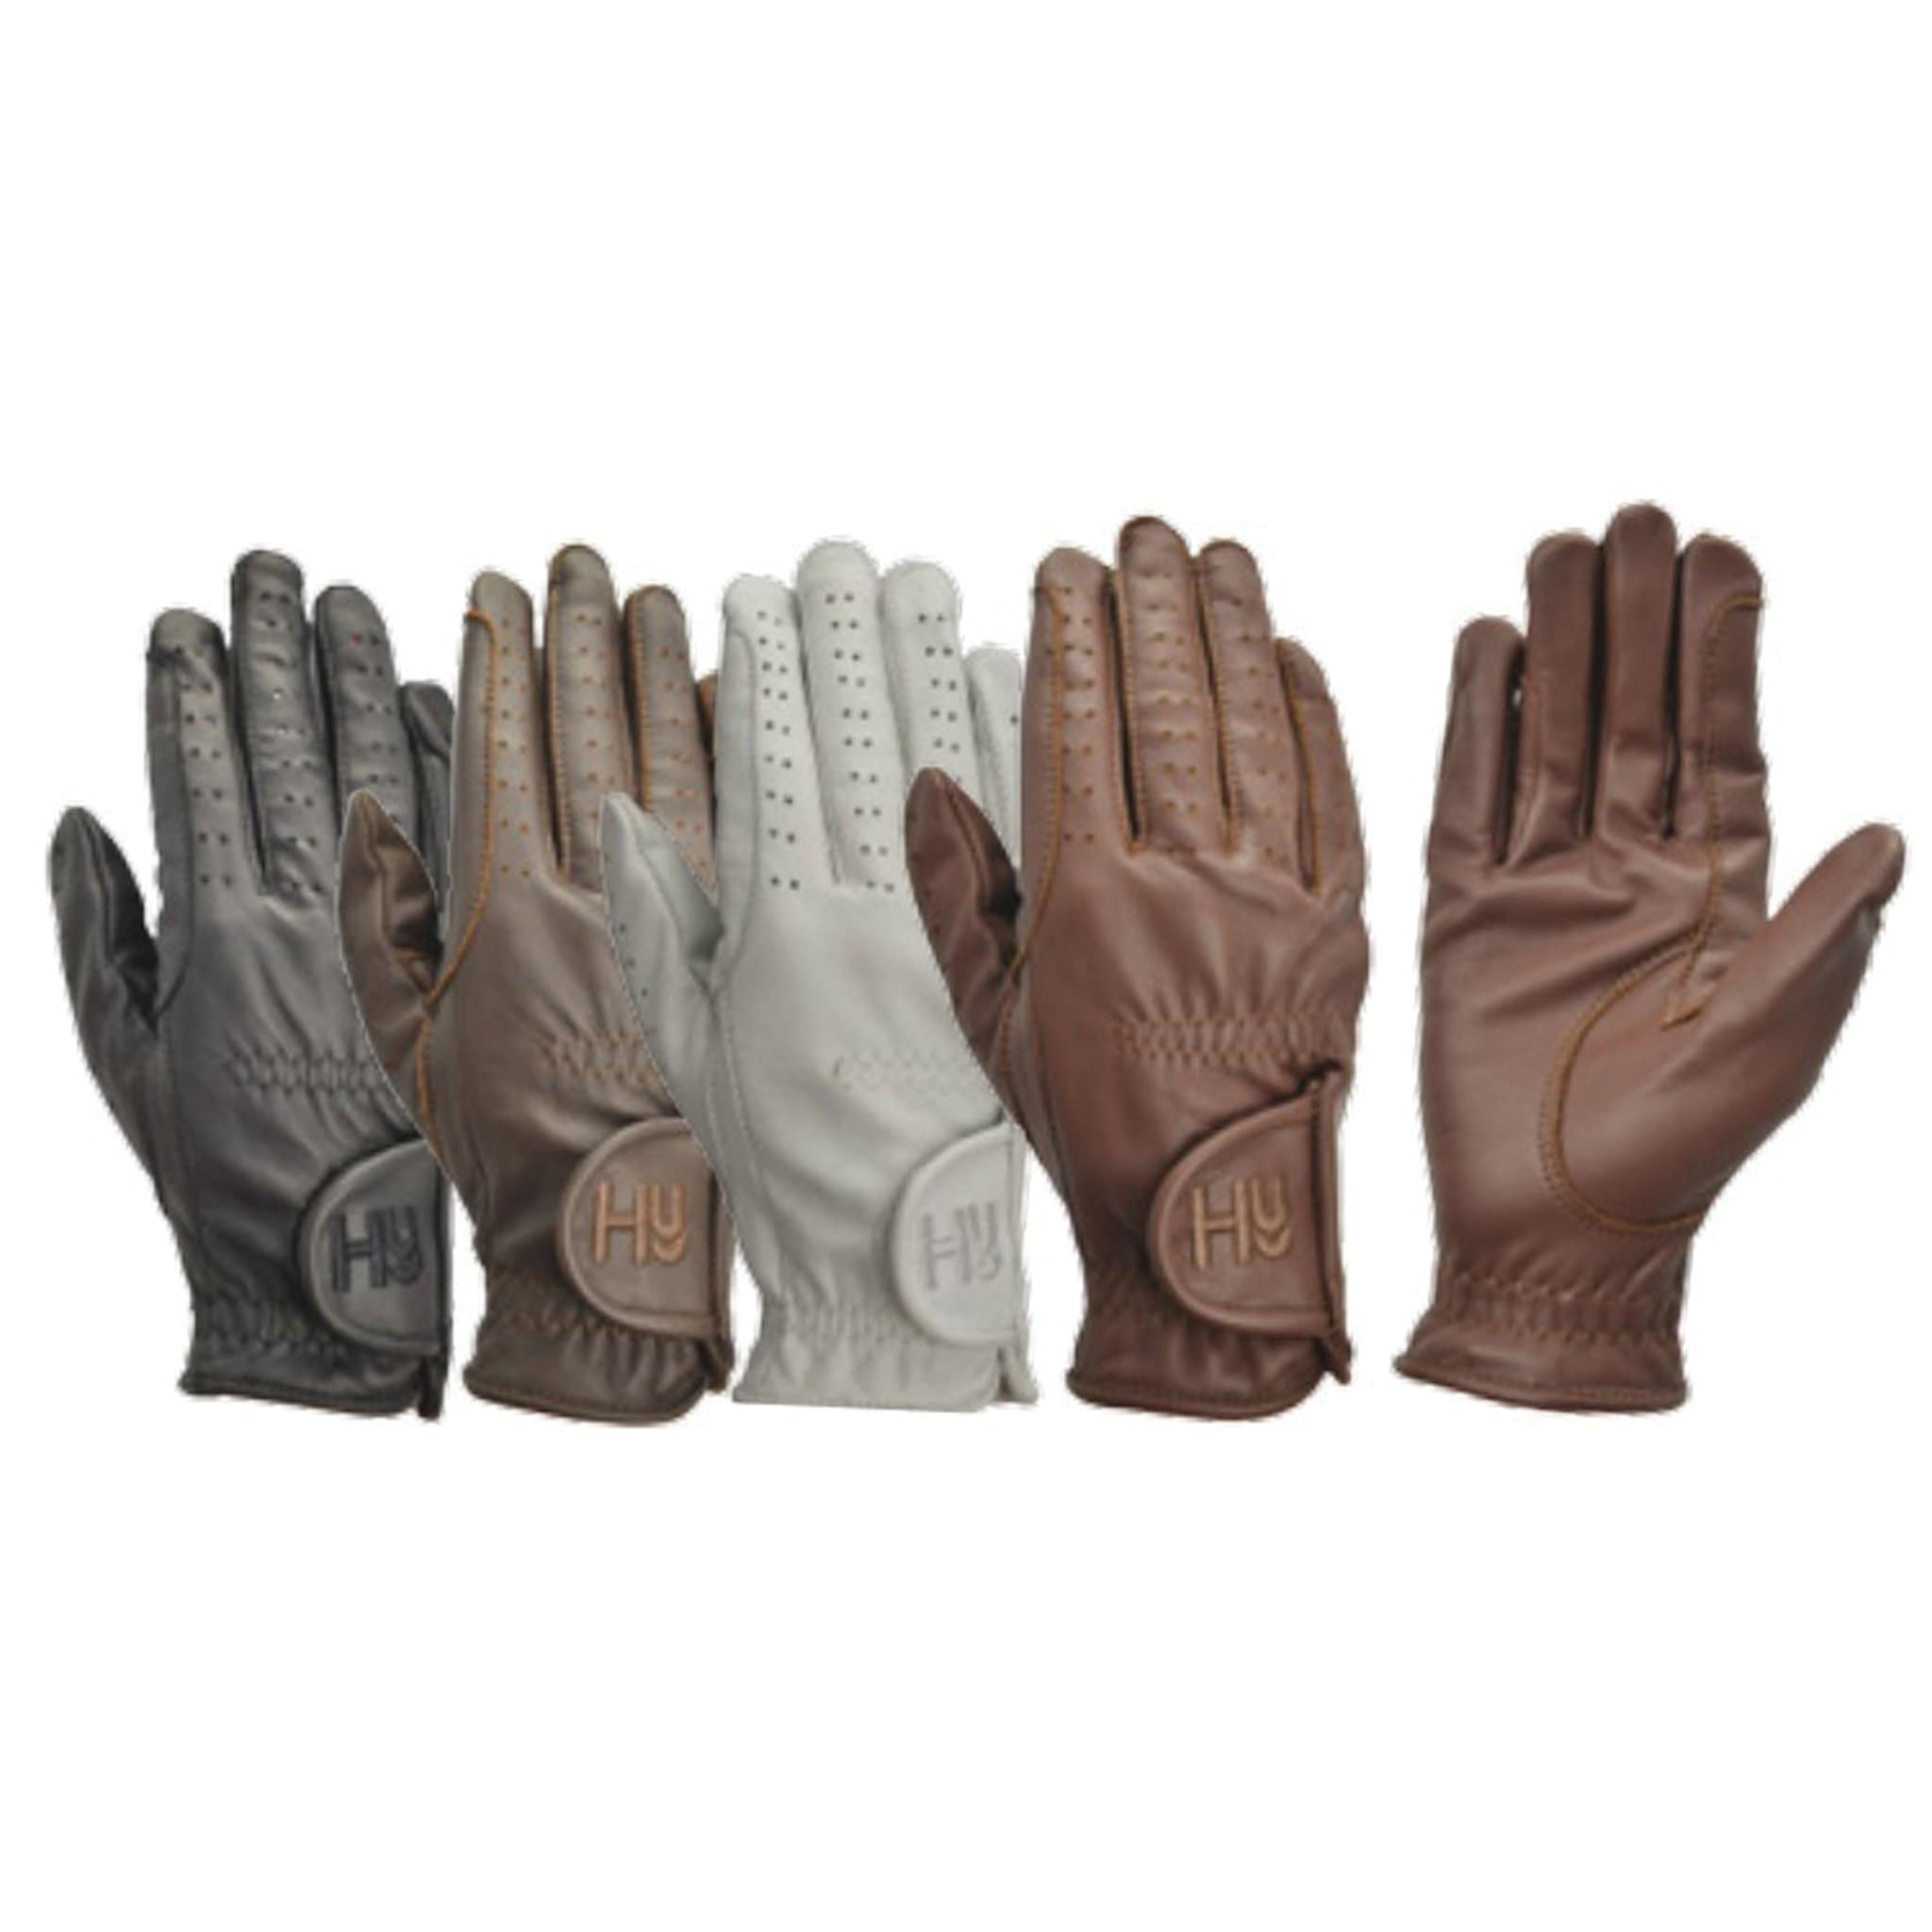 Hy5 Children's Leather Riding Glove 9371